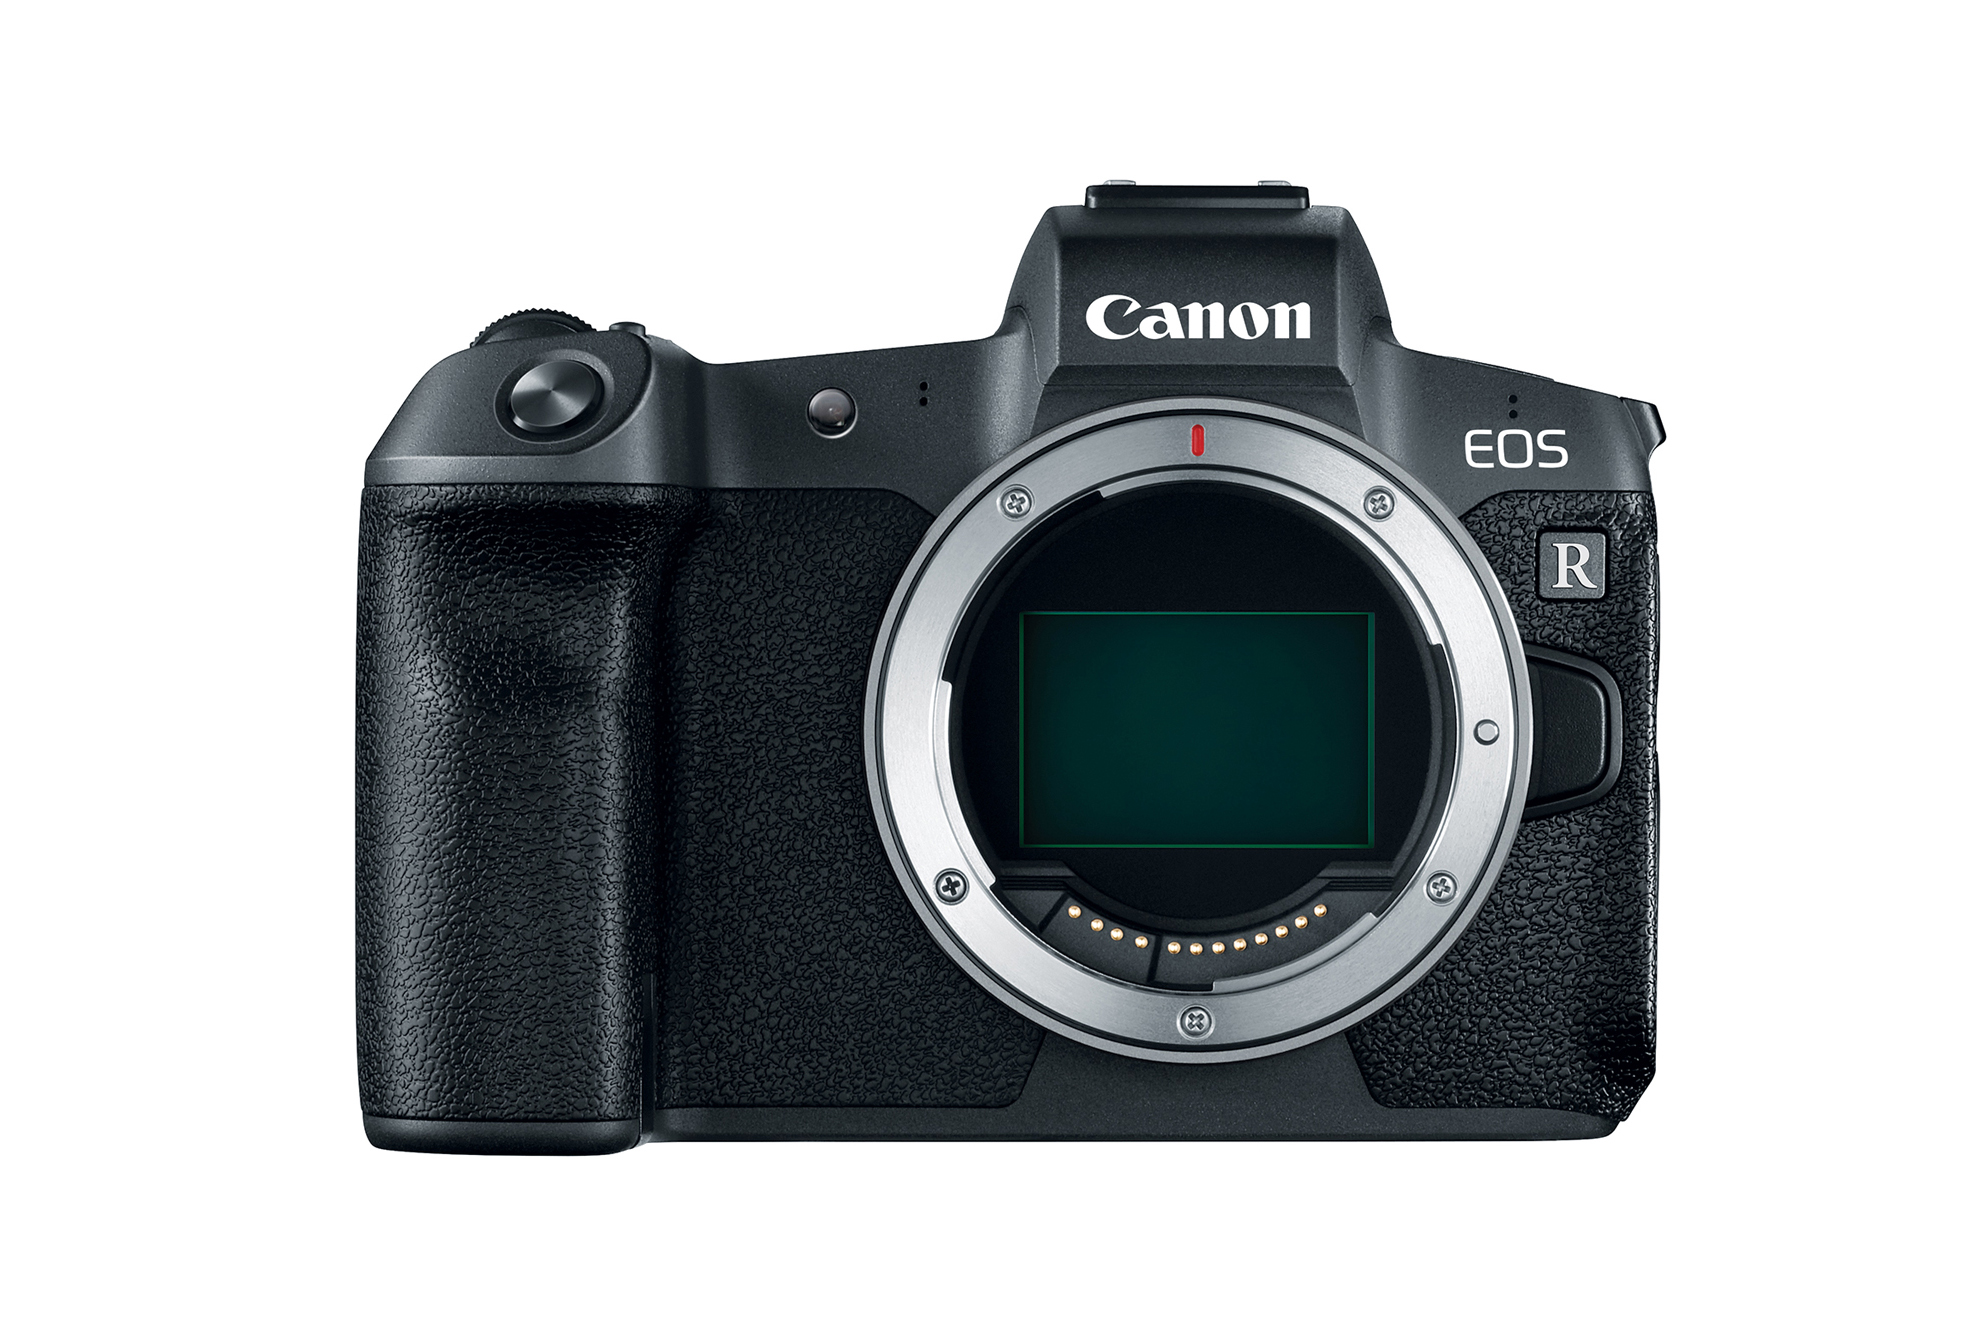 Canon Introduces Full Frame EOS R System Cameras Full-Frame Tech Digital Processing Imagery Sony A7 Sensor megapixel CMOS